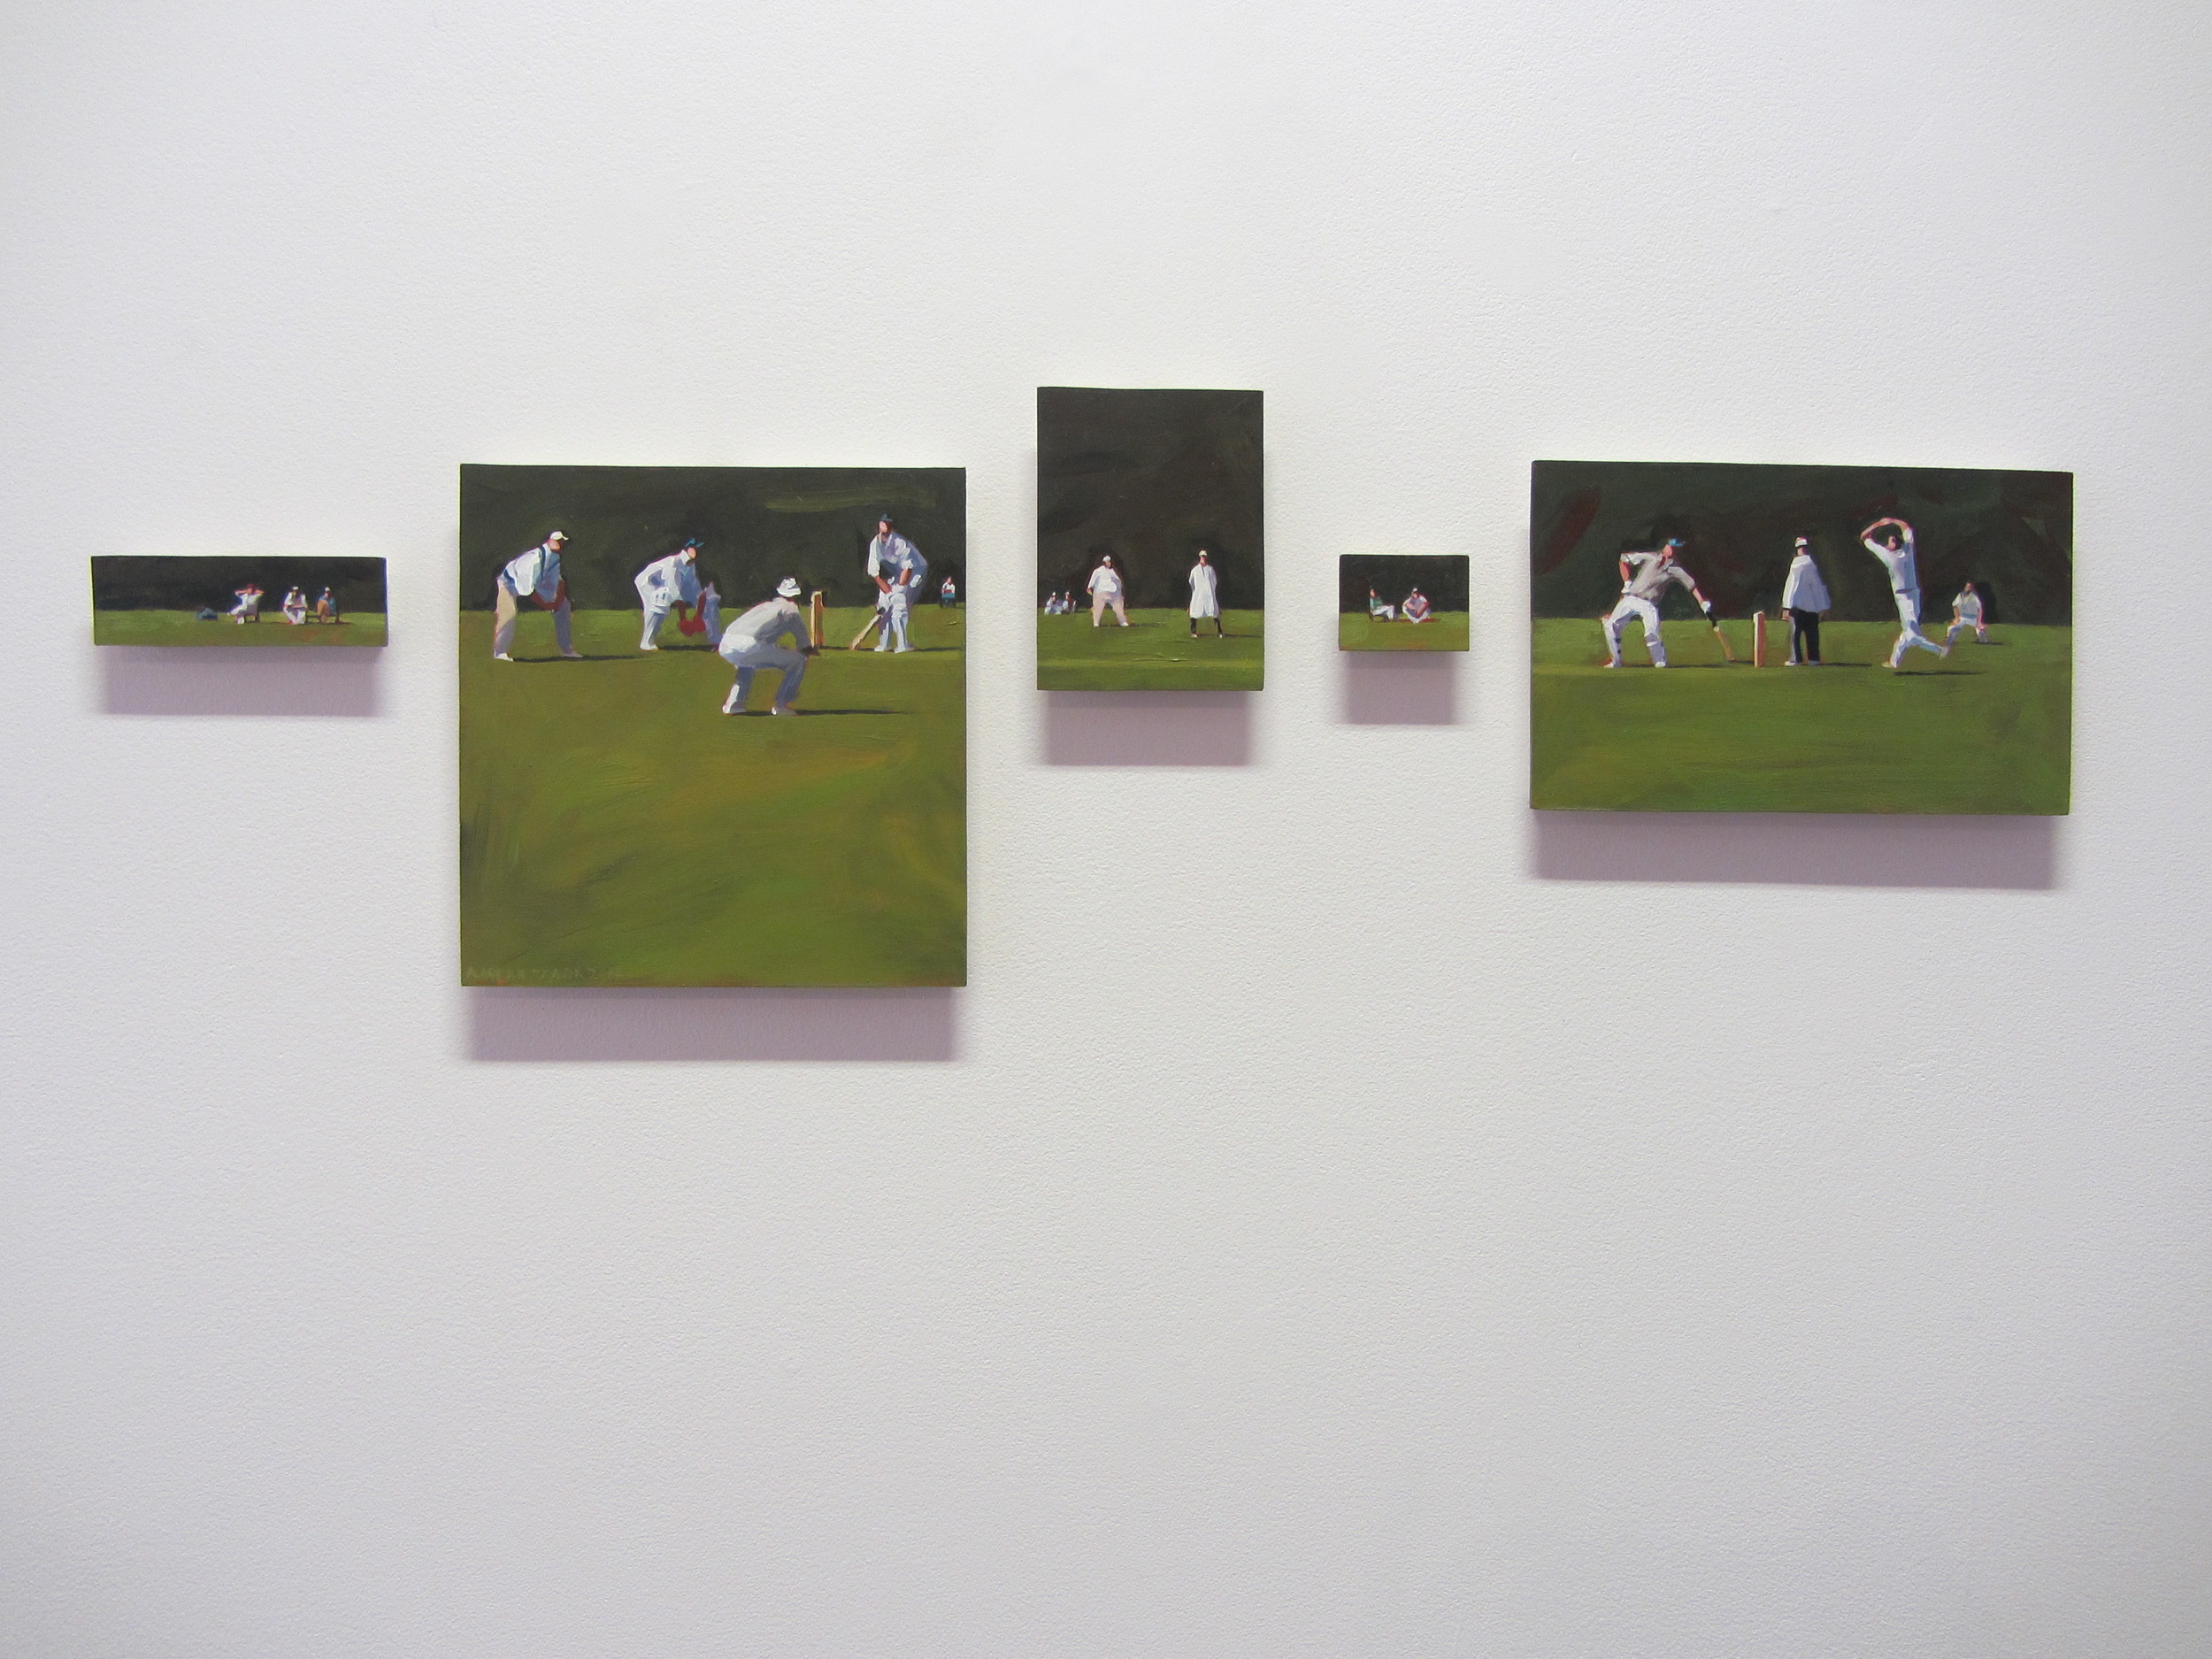 Image: Alastair Taylor,   Cricket   Pentaptych 2013, acrylic on board